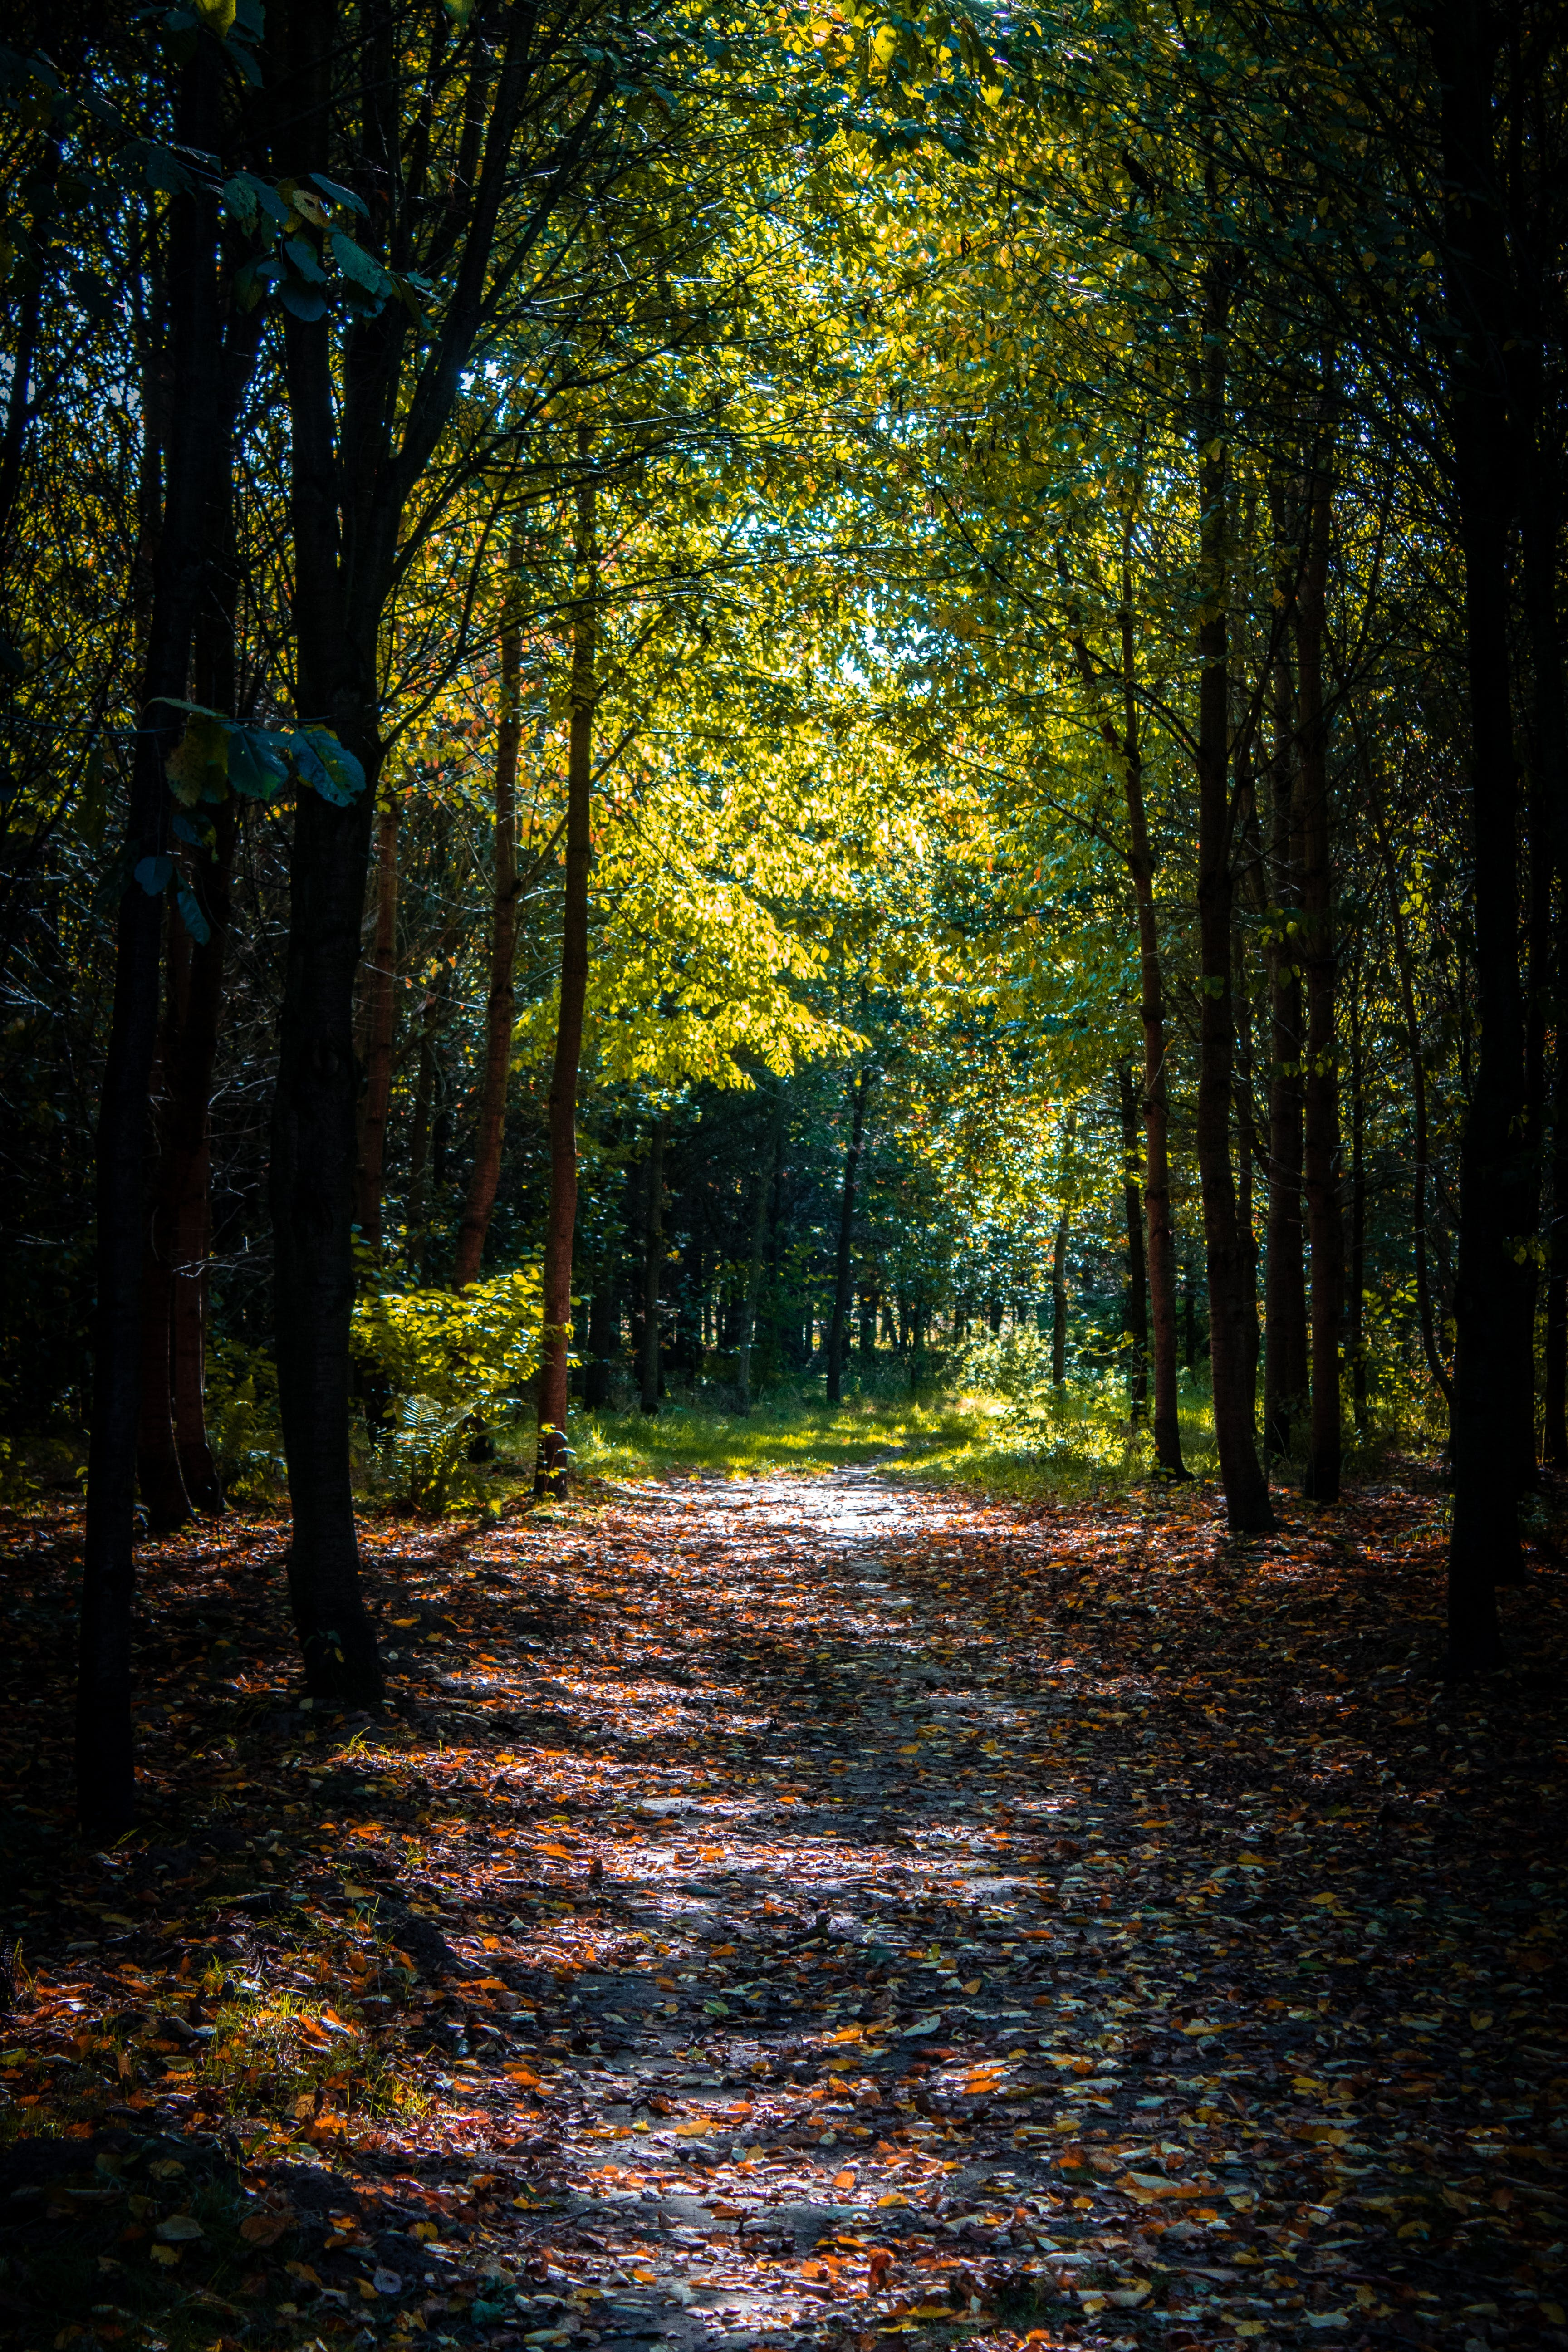 Foot Path In the Middle of a Forest